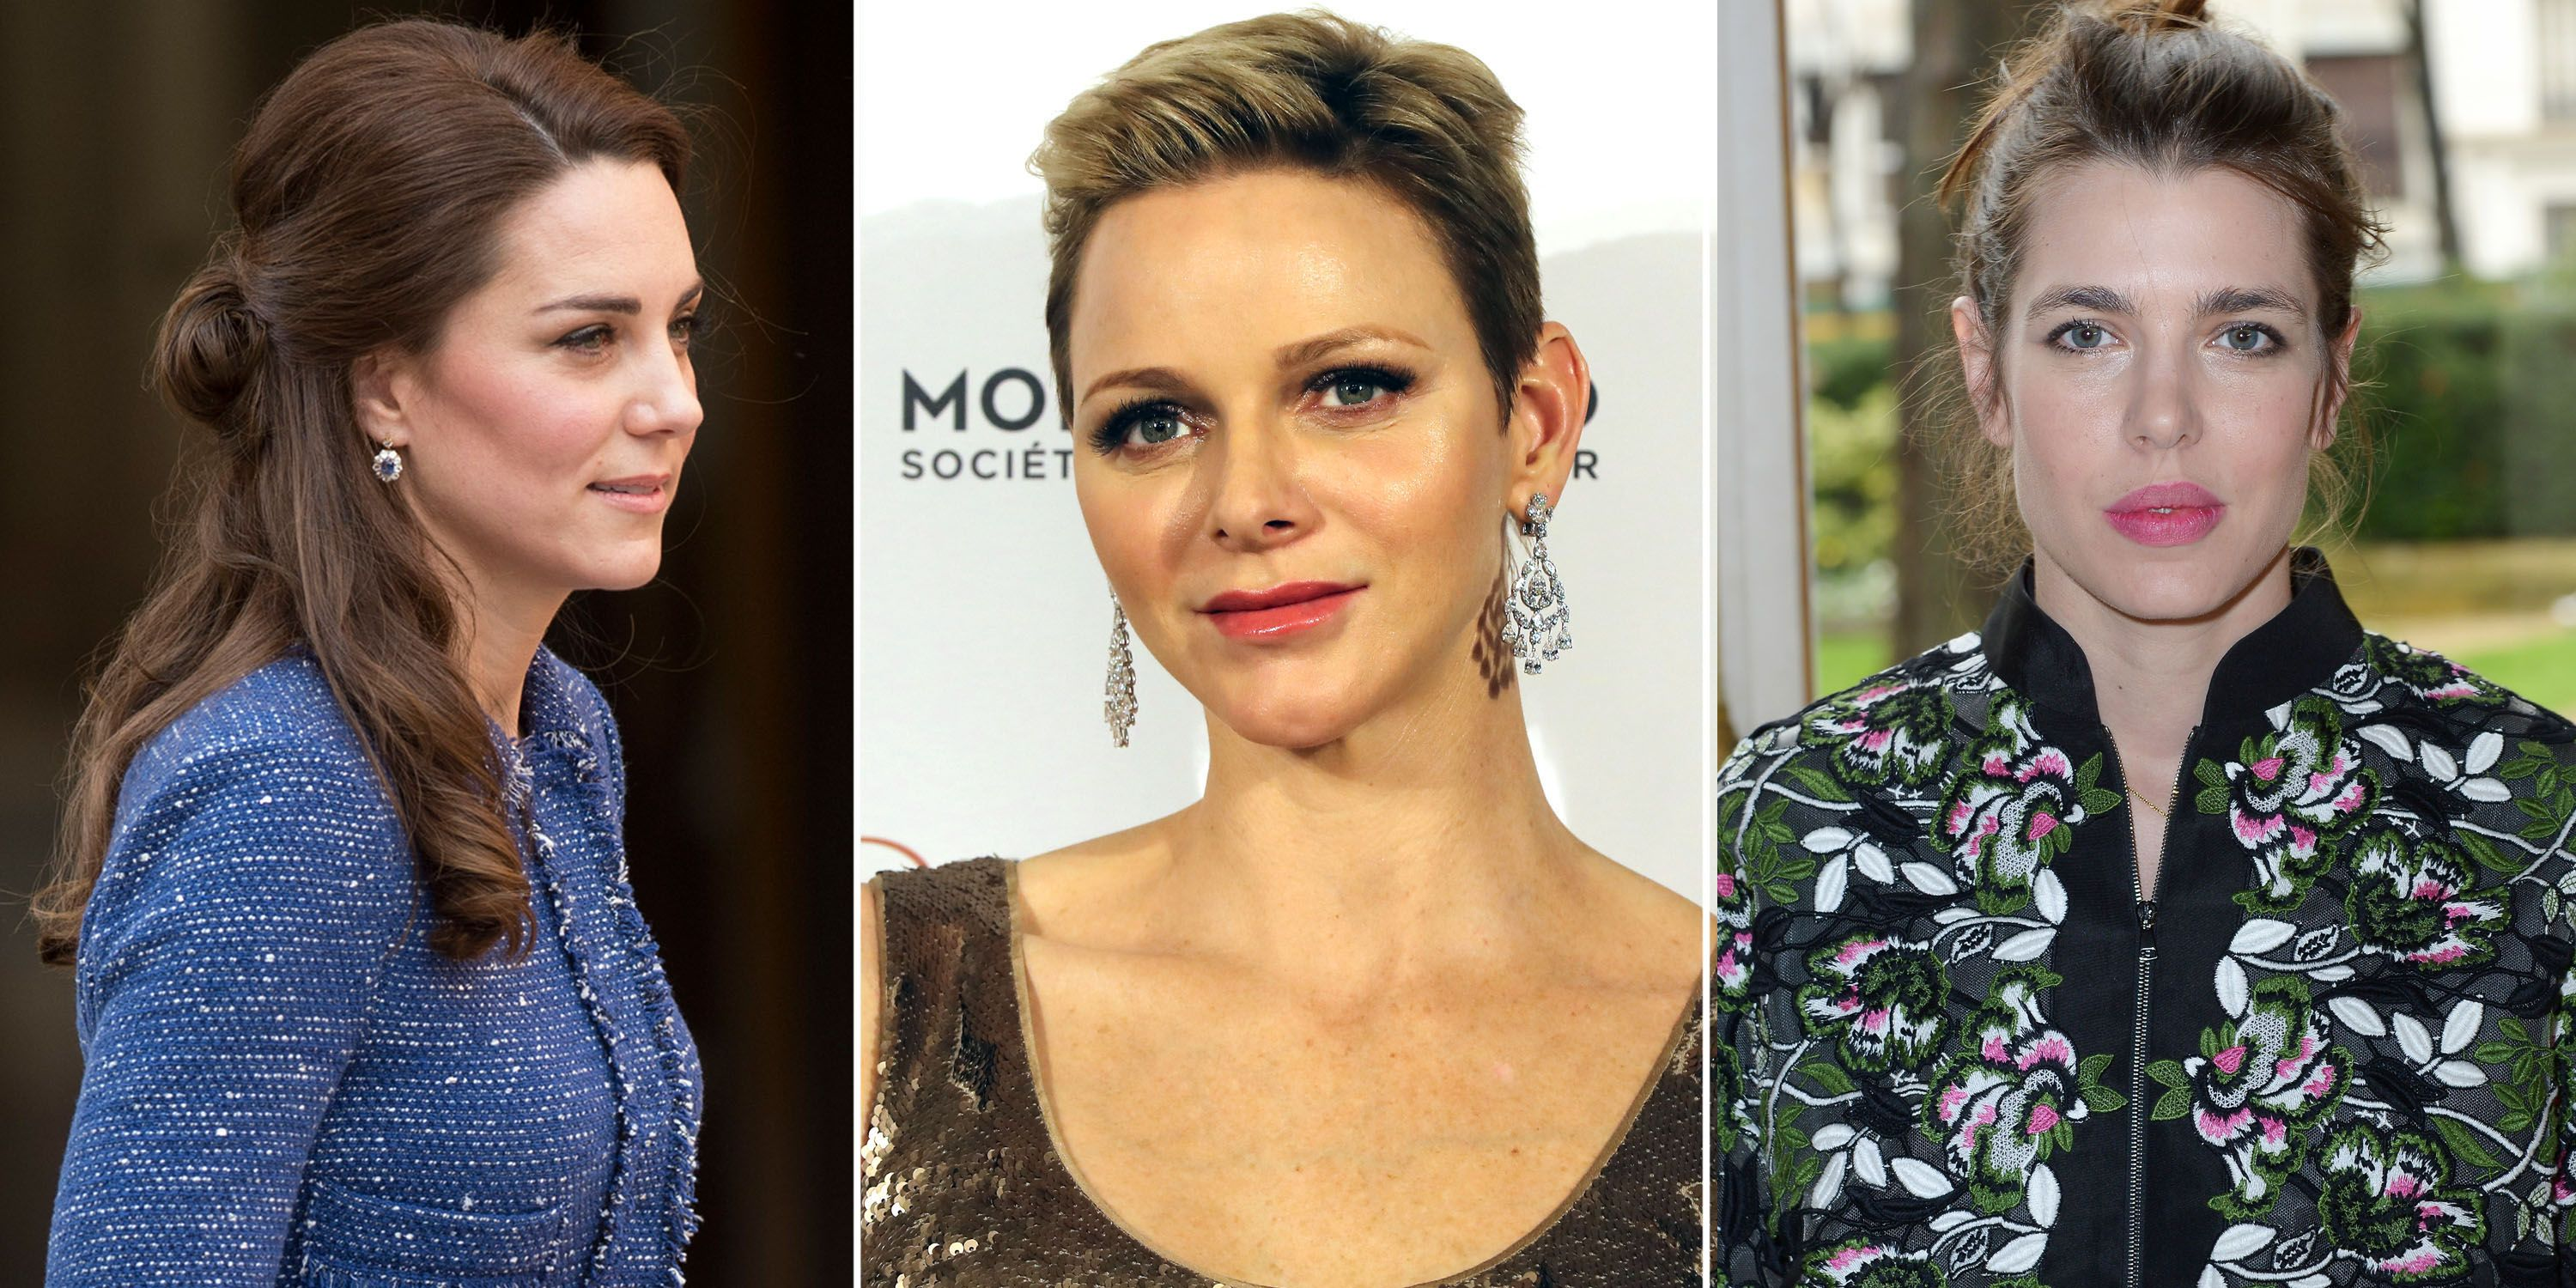 <p>Though movies and fairytales would have you believe that princesses walk around in full gowns and tiaras 24/7—that's obviously not the case. Here, the Duchess of Cambridge, Princess Charlene of Monaco, and Princess Charlotte of Monaco show off what royal beauty looks like in the day-to-day.</p>